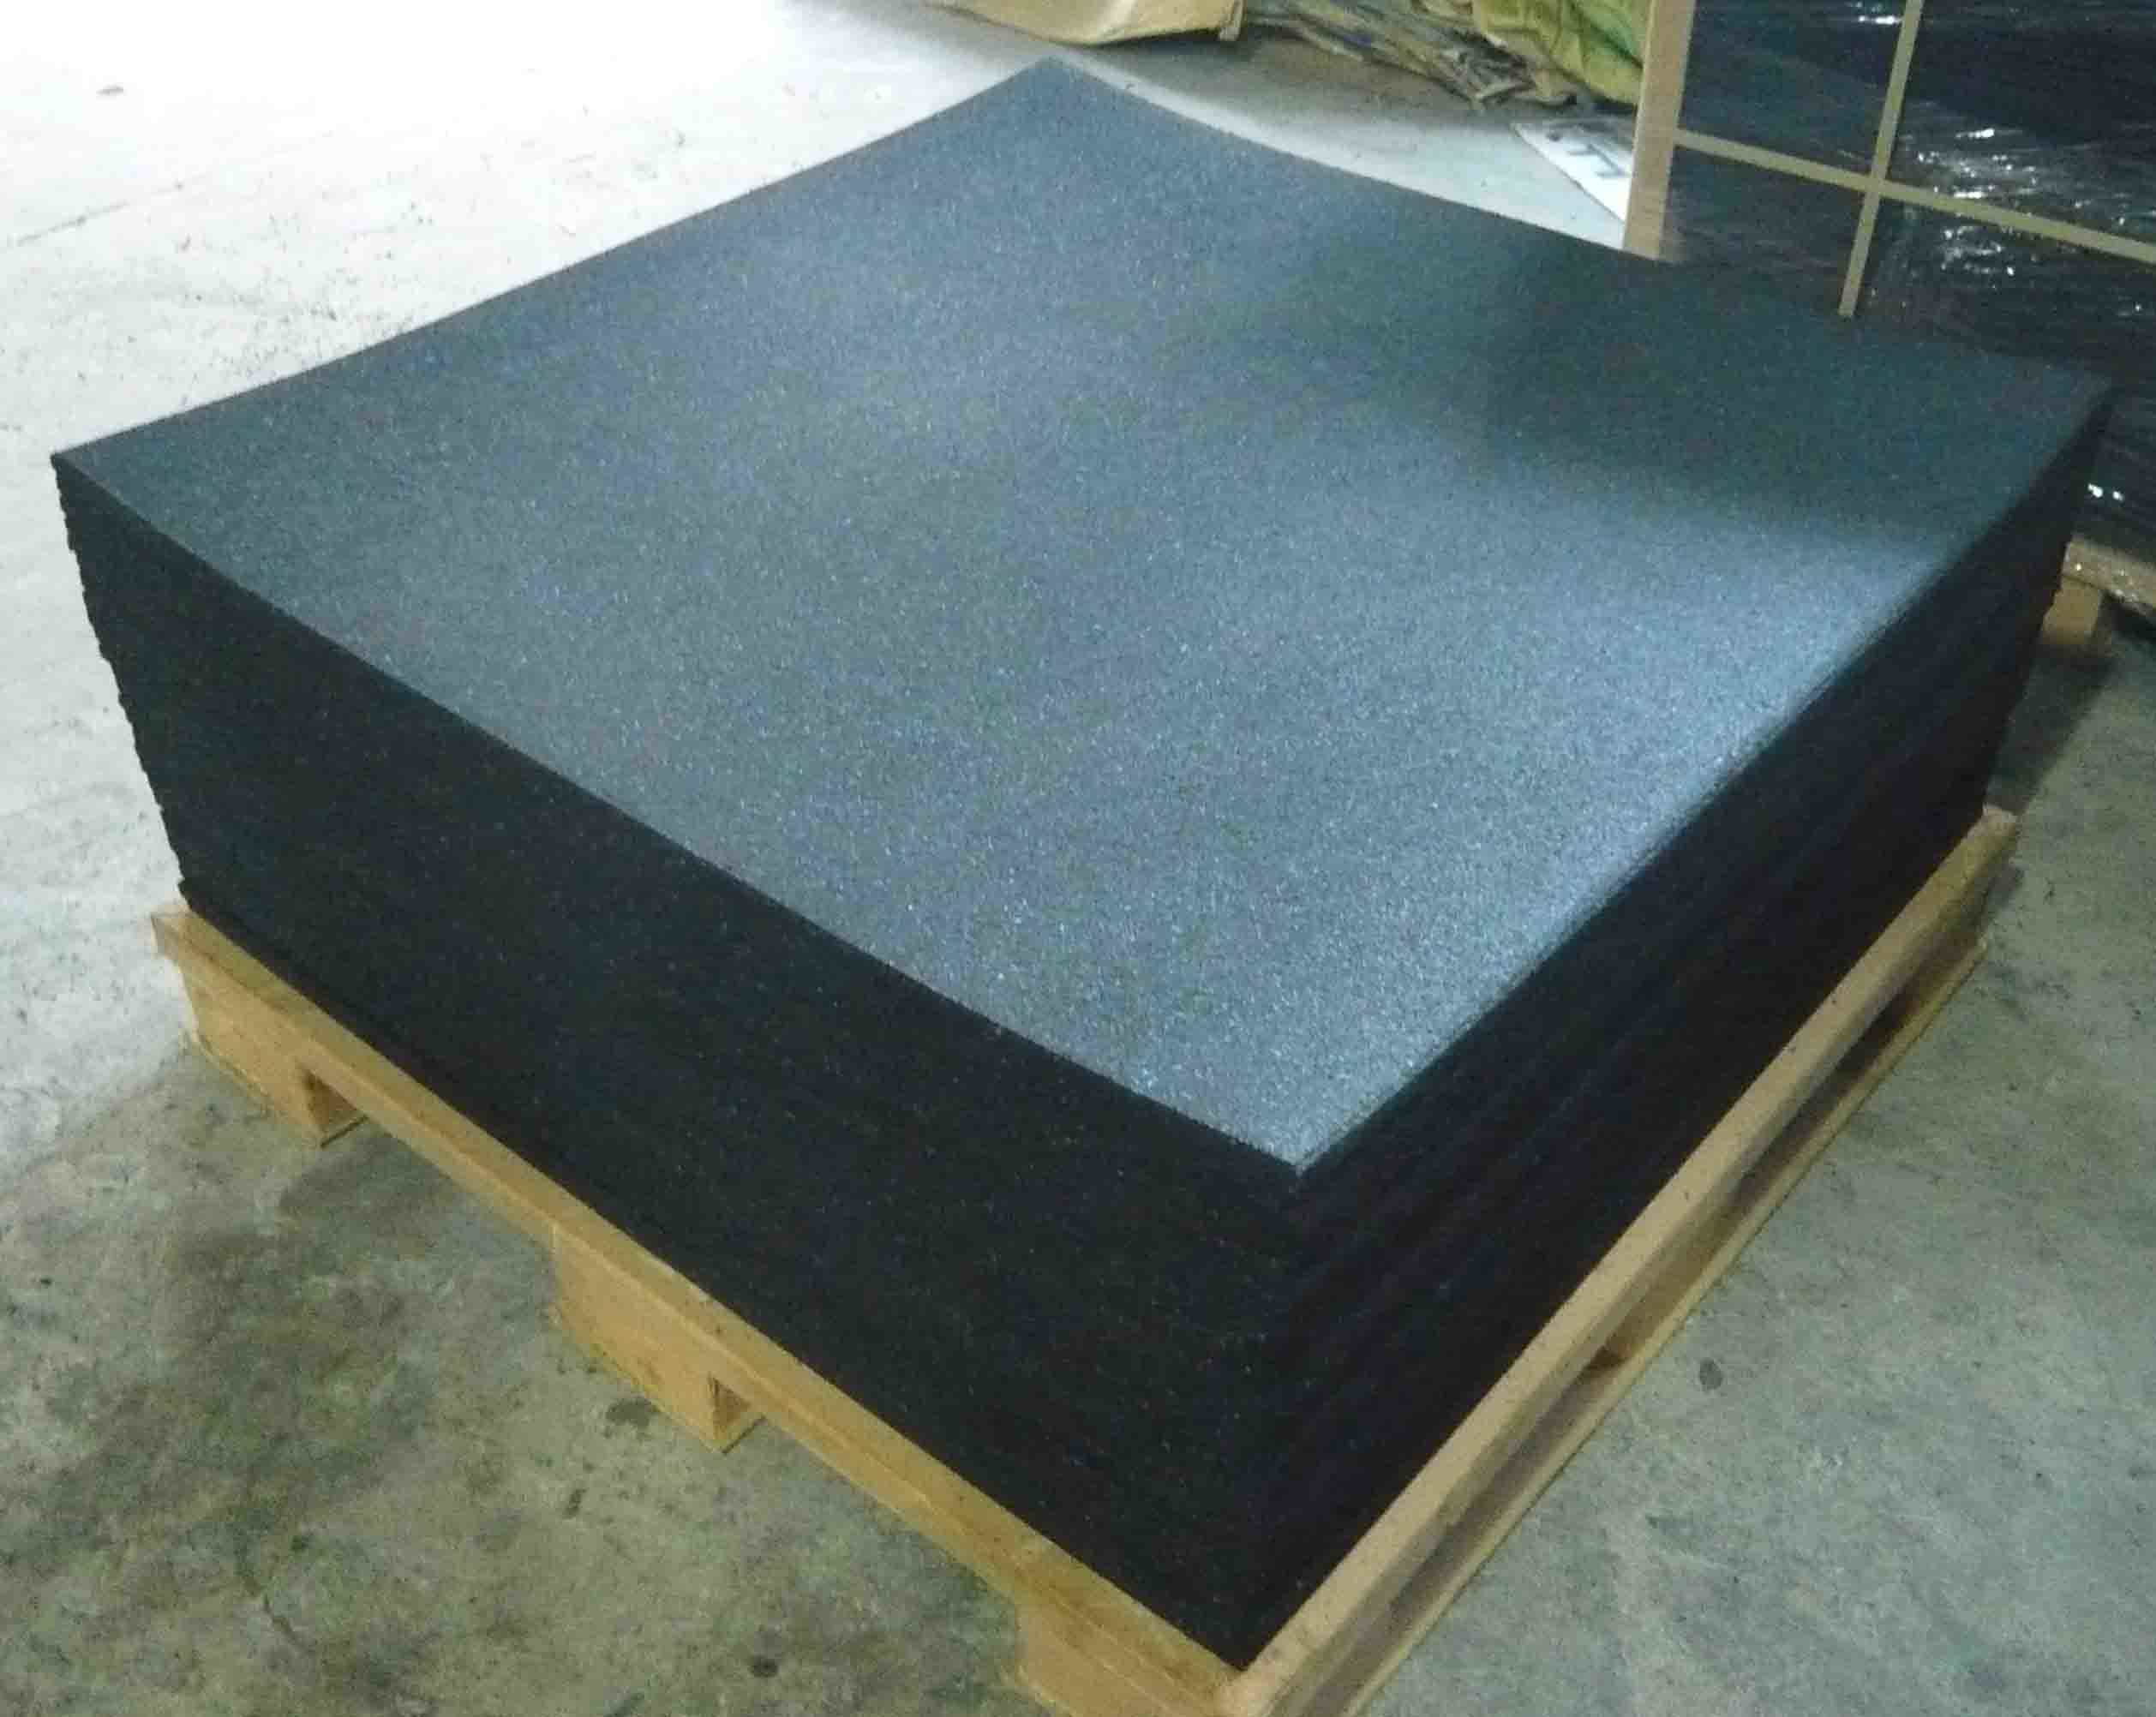 1000x1000x15mm Black With Speckle Rubber Gym Flooring